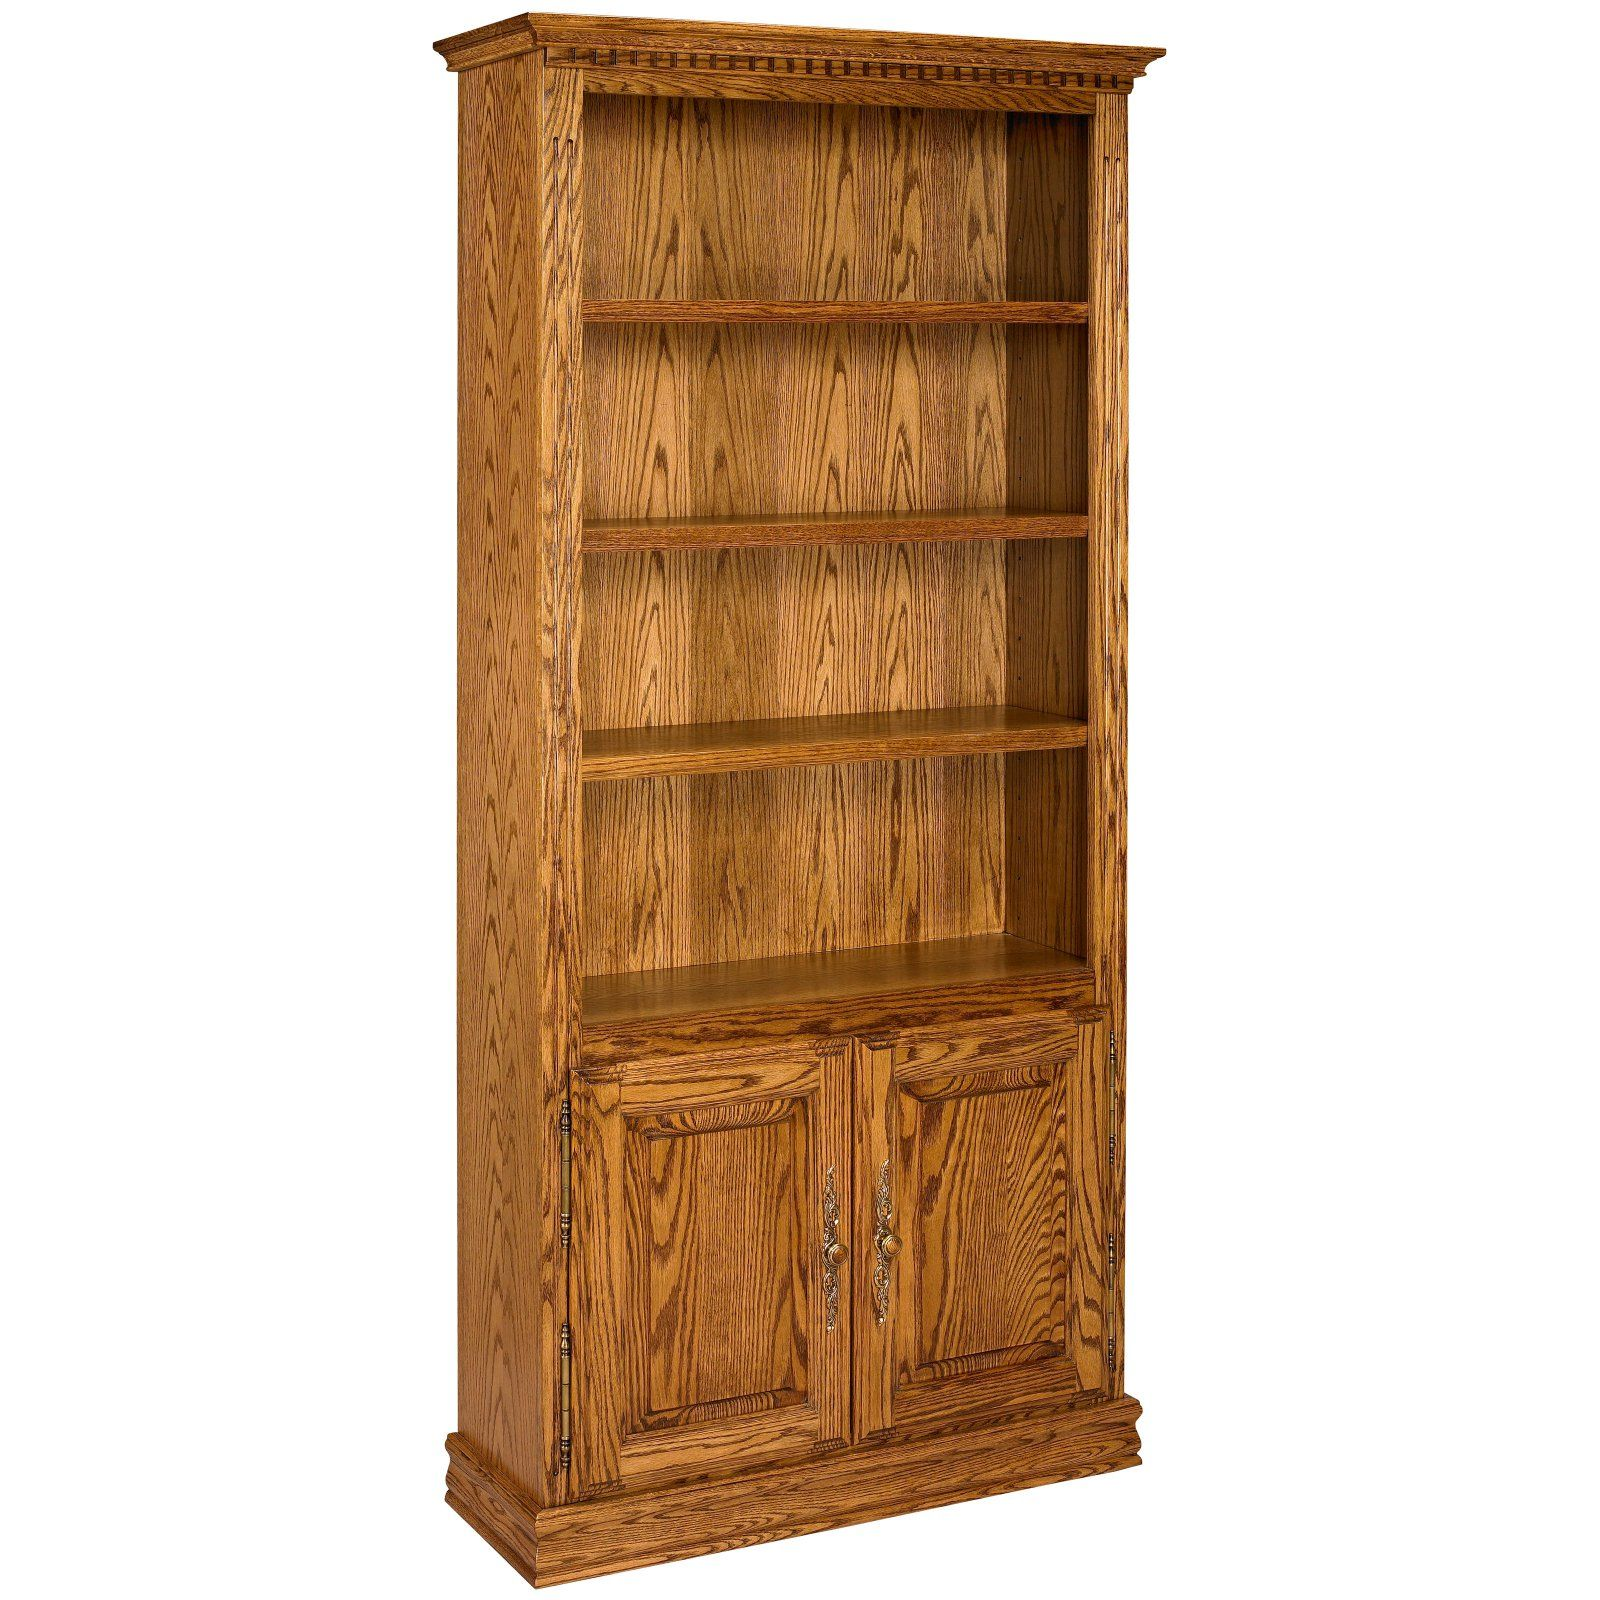 100 Solid Wood Bookcase 8ft Tall White Painted Waxed Alcove Adjustable Display Shelving Unit Bookshelves With Cupboard Bookcase Wood Bookcase Bookshelves